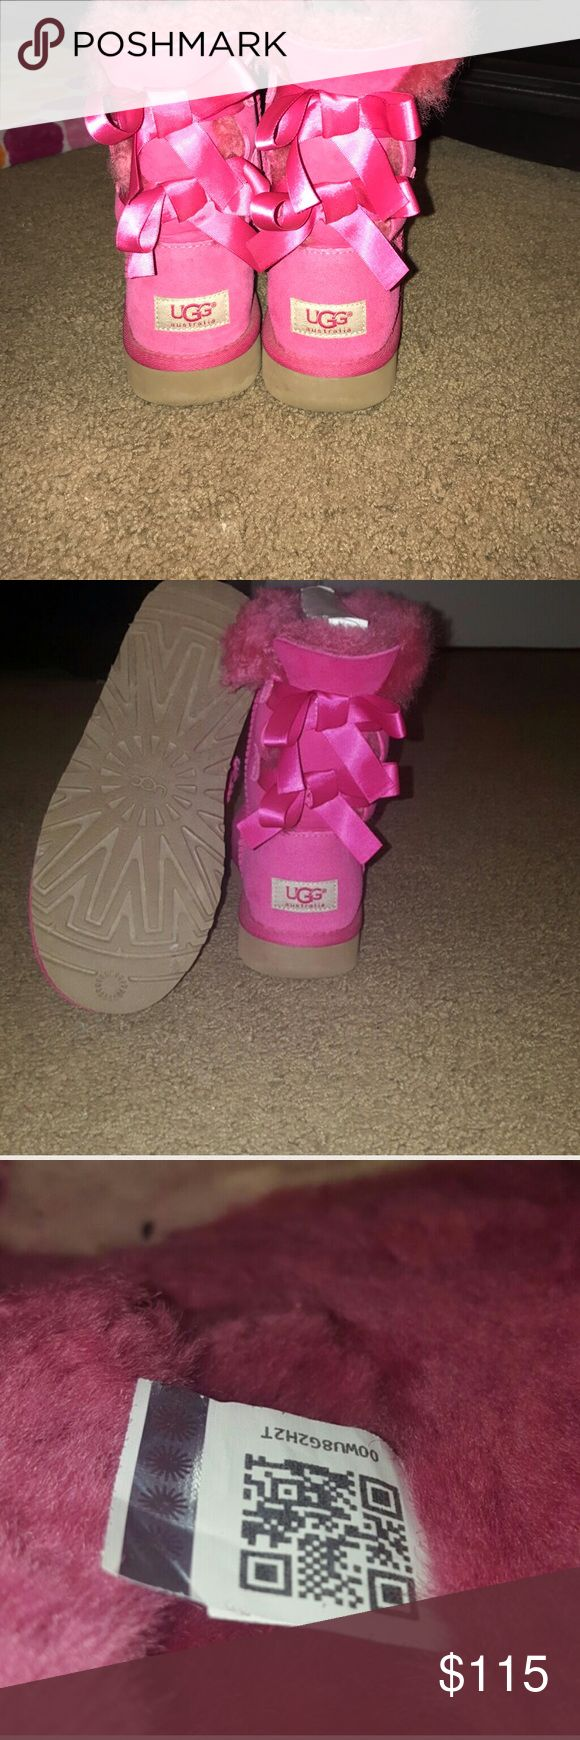 NO TRADES: UGG bailey bow boots in pink Only worn once! No signs of wear on boot. I'm a size 6.5 in women's and they fit me perfectly. They would also work for a child's size 4😊 UGG Shoes Winter & Rain Boots